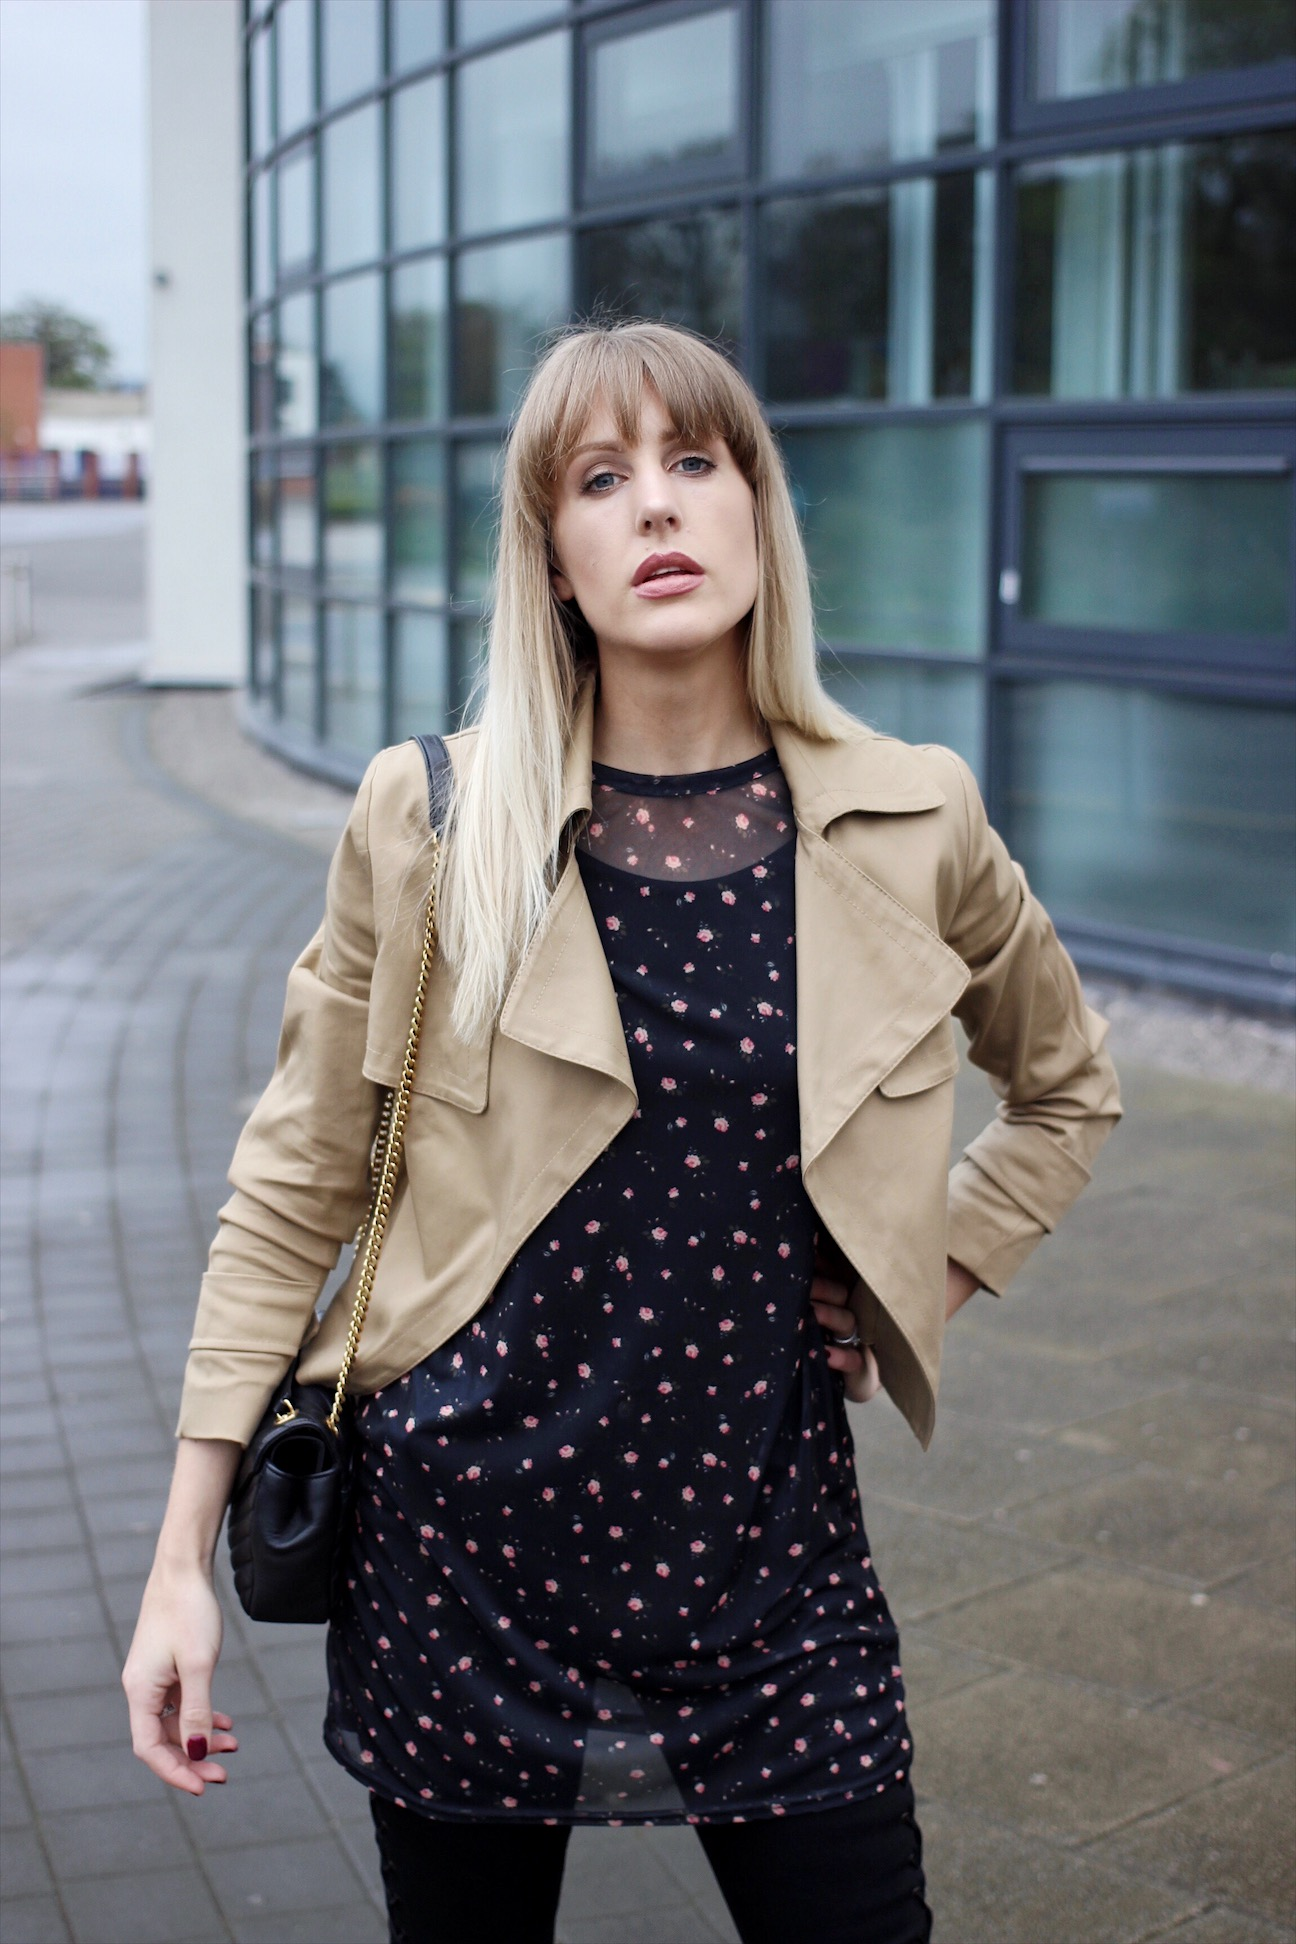 Charlotte Buttrick high street fashion blogger with designer accessories